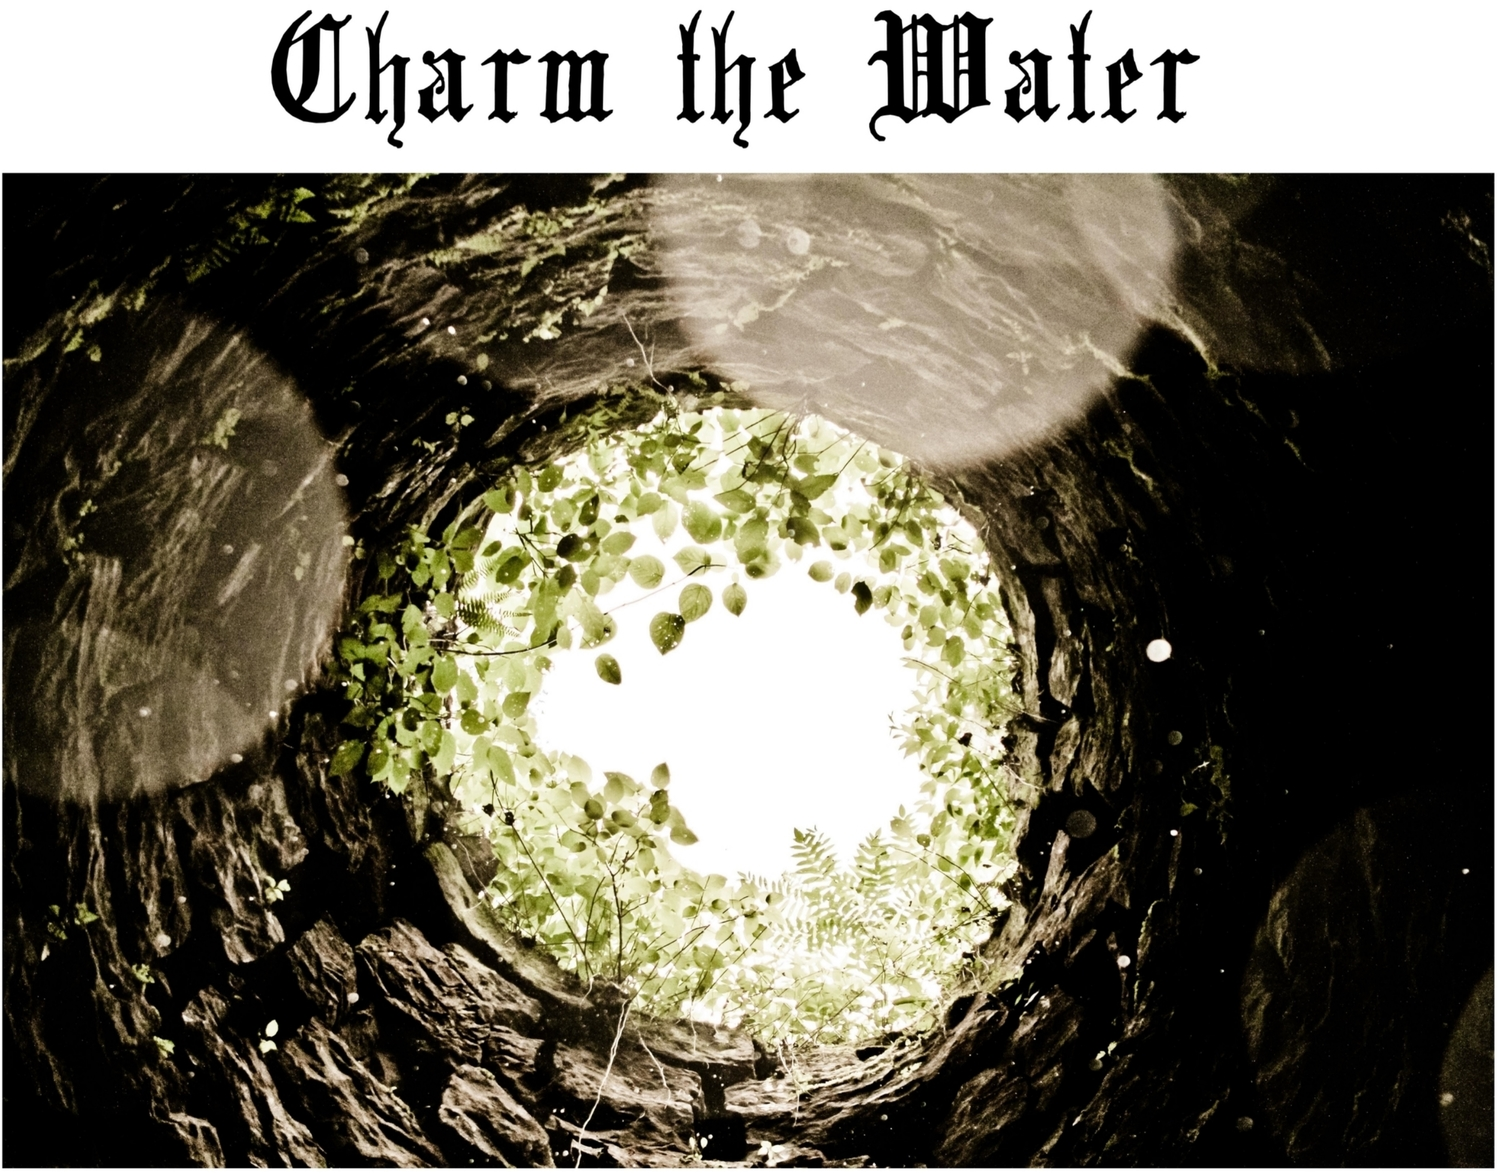 Charm The Water